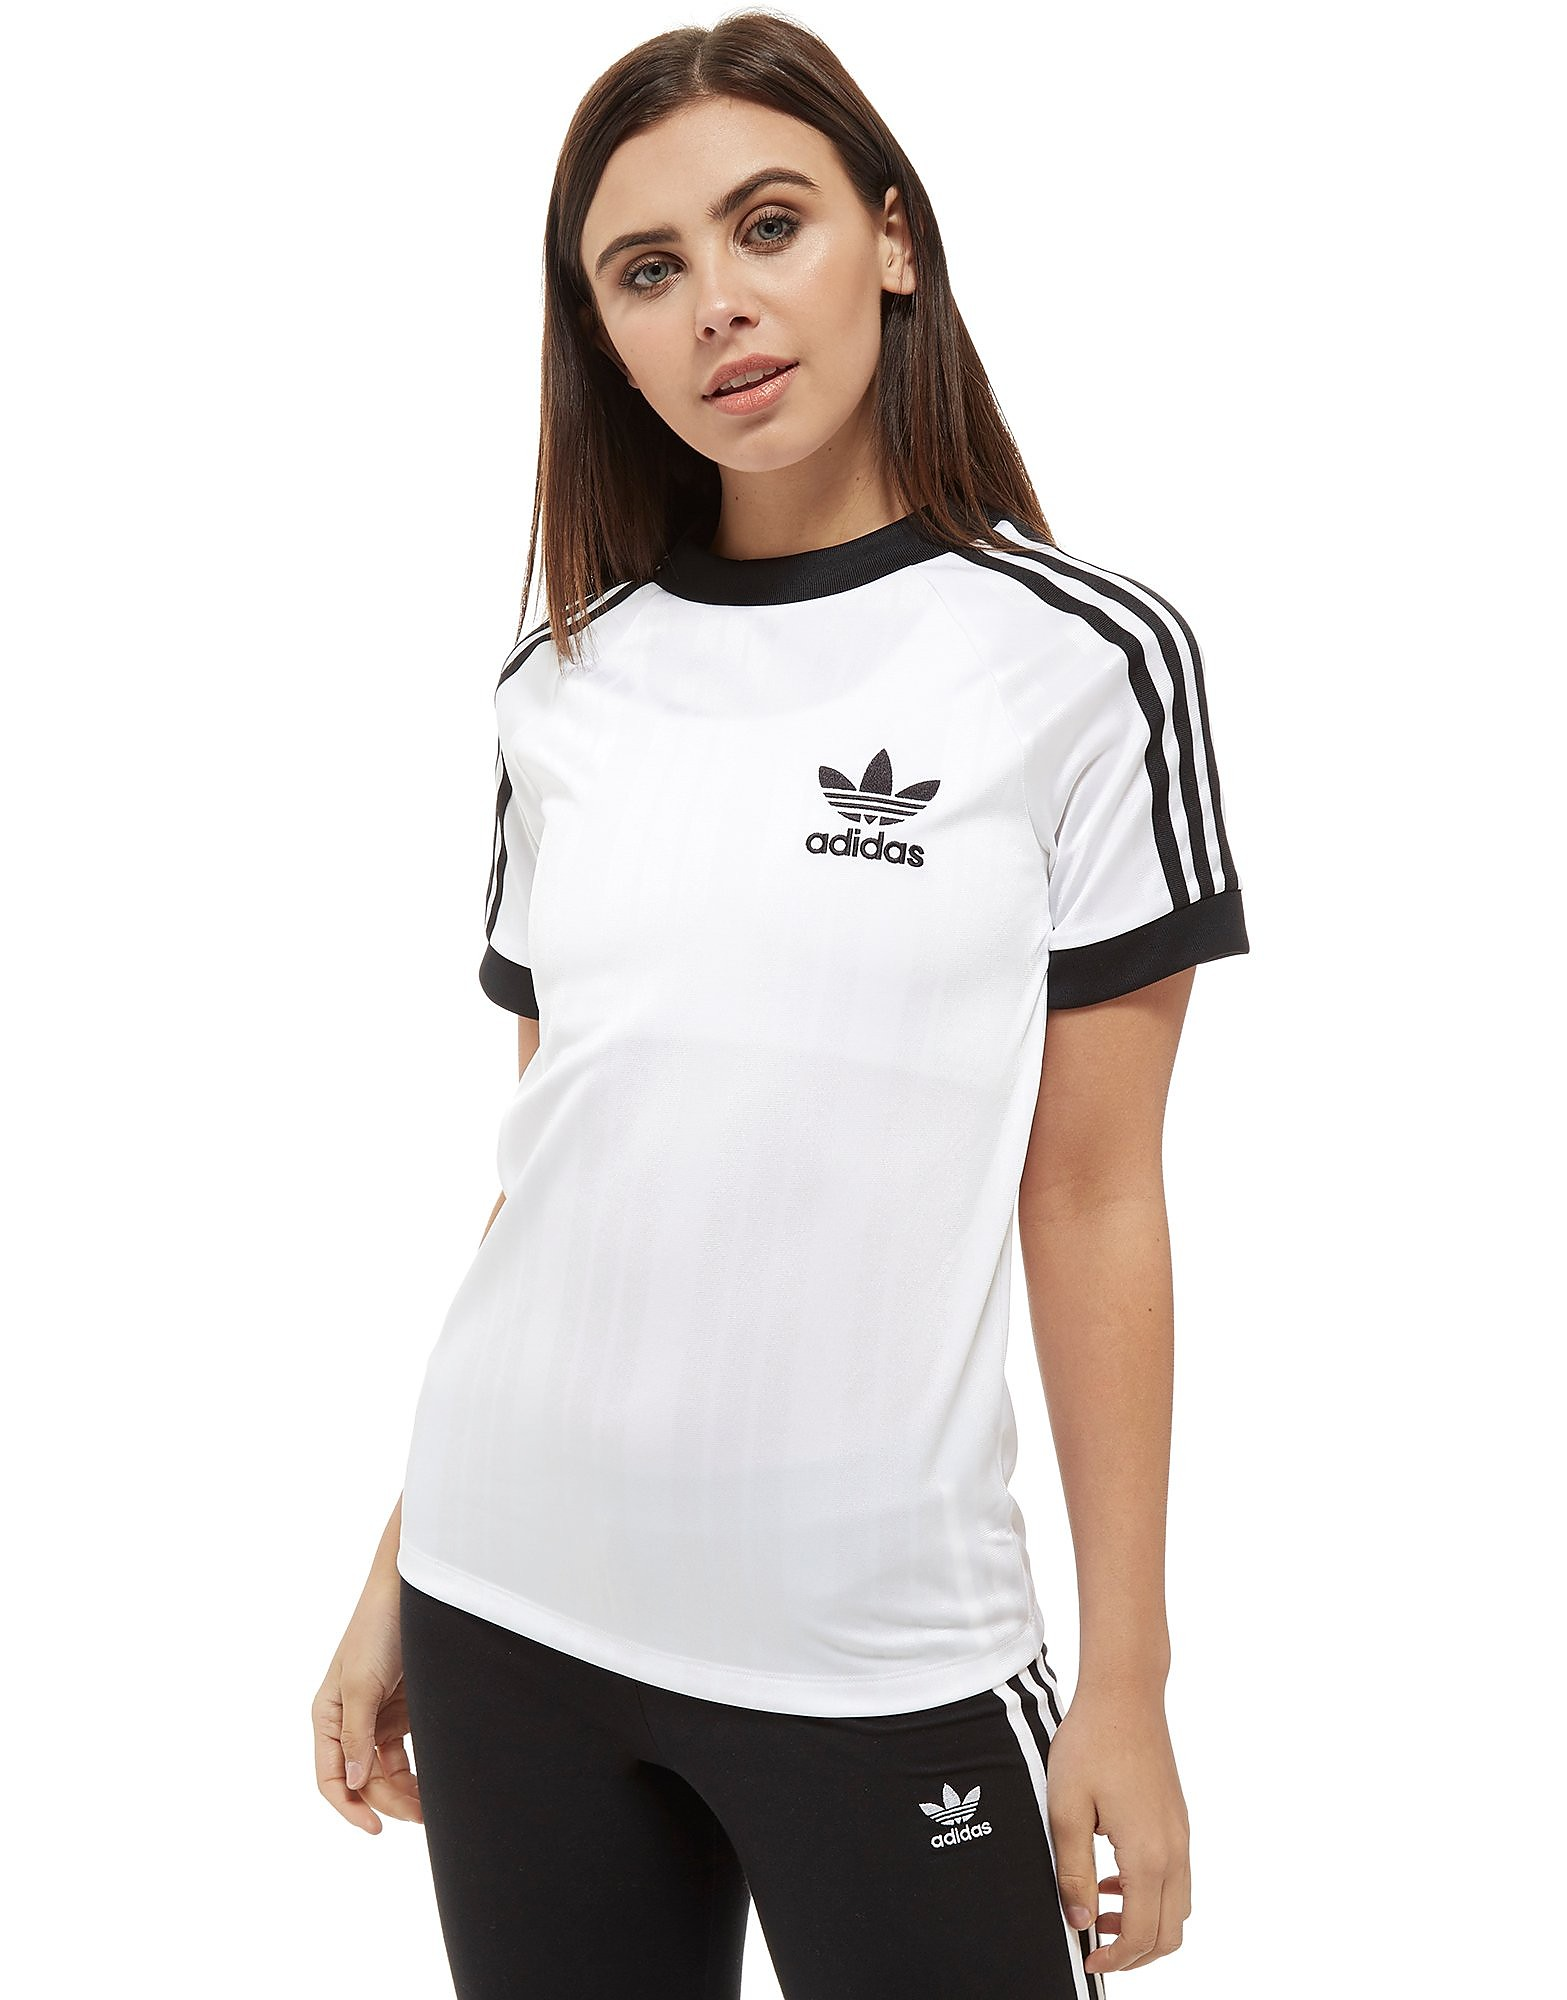 adidas Originals California Football T-Shirt